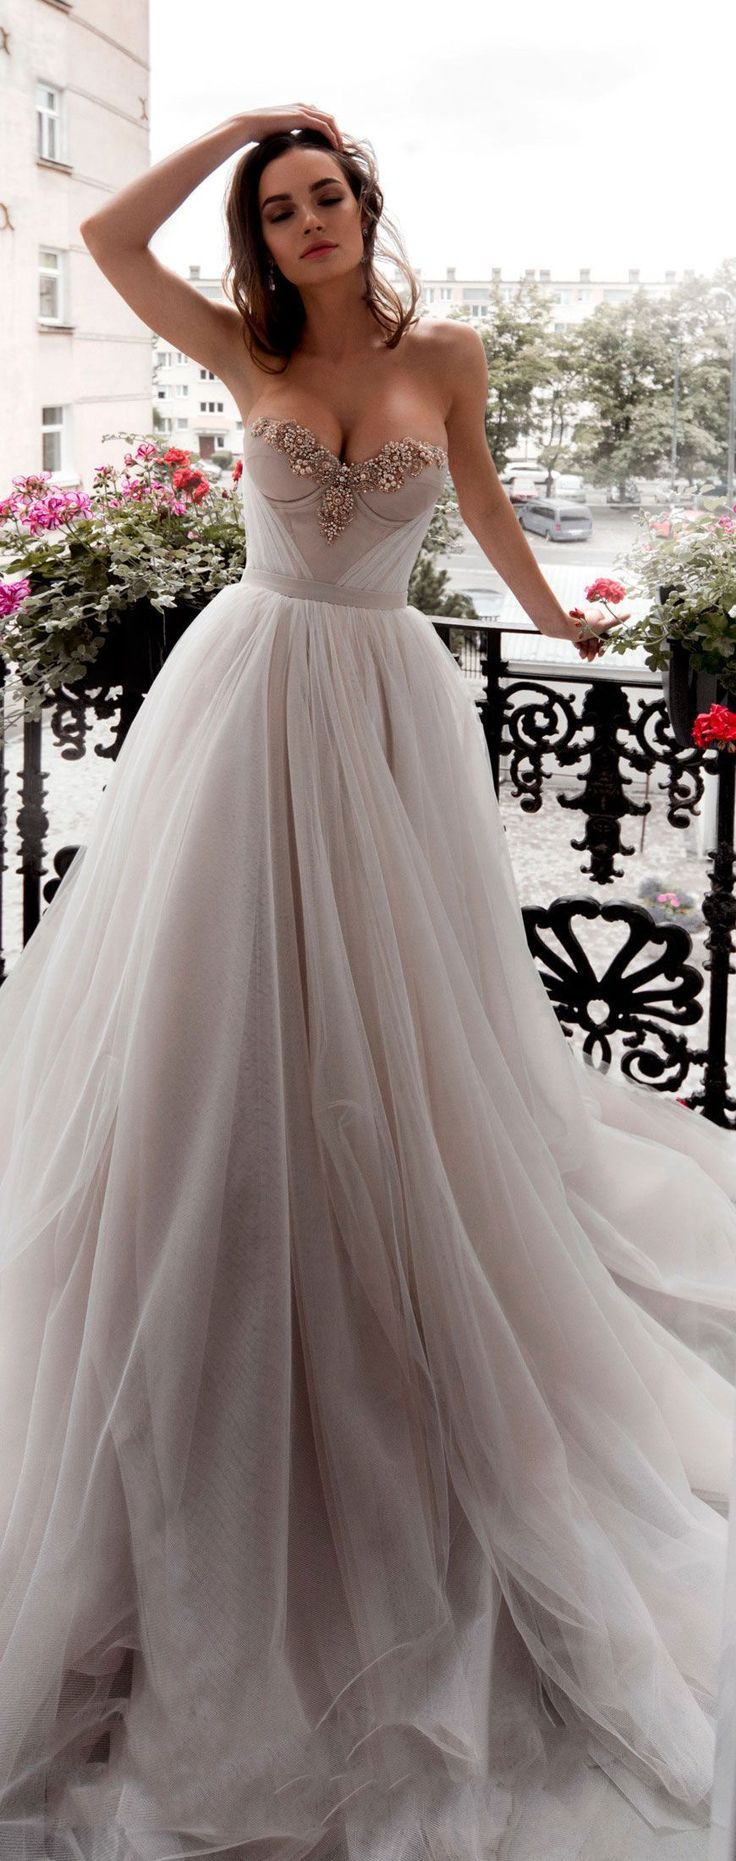 sweetheart neckline ball gown a line wedding dress